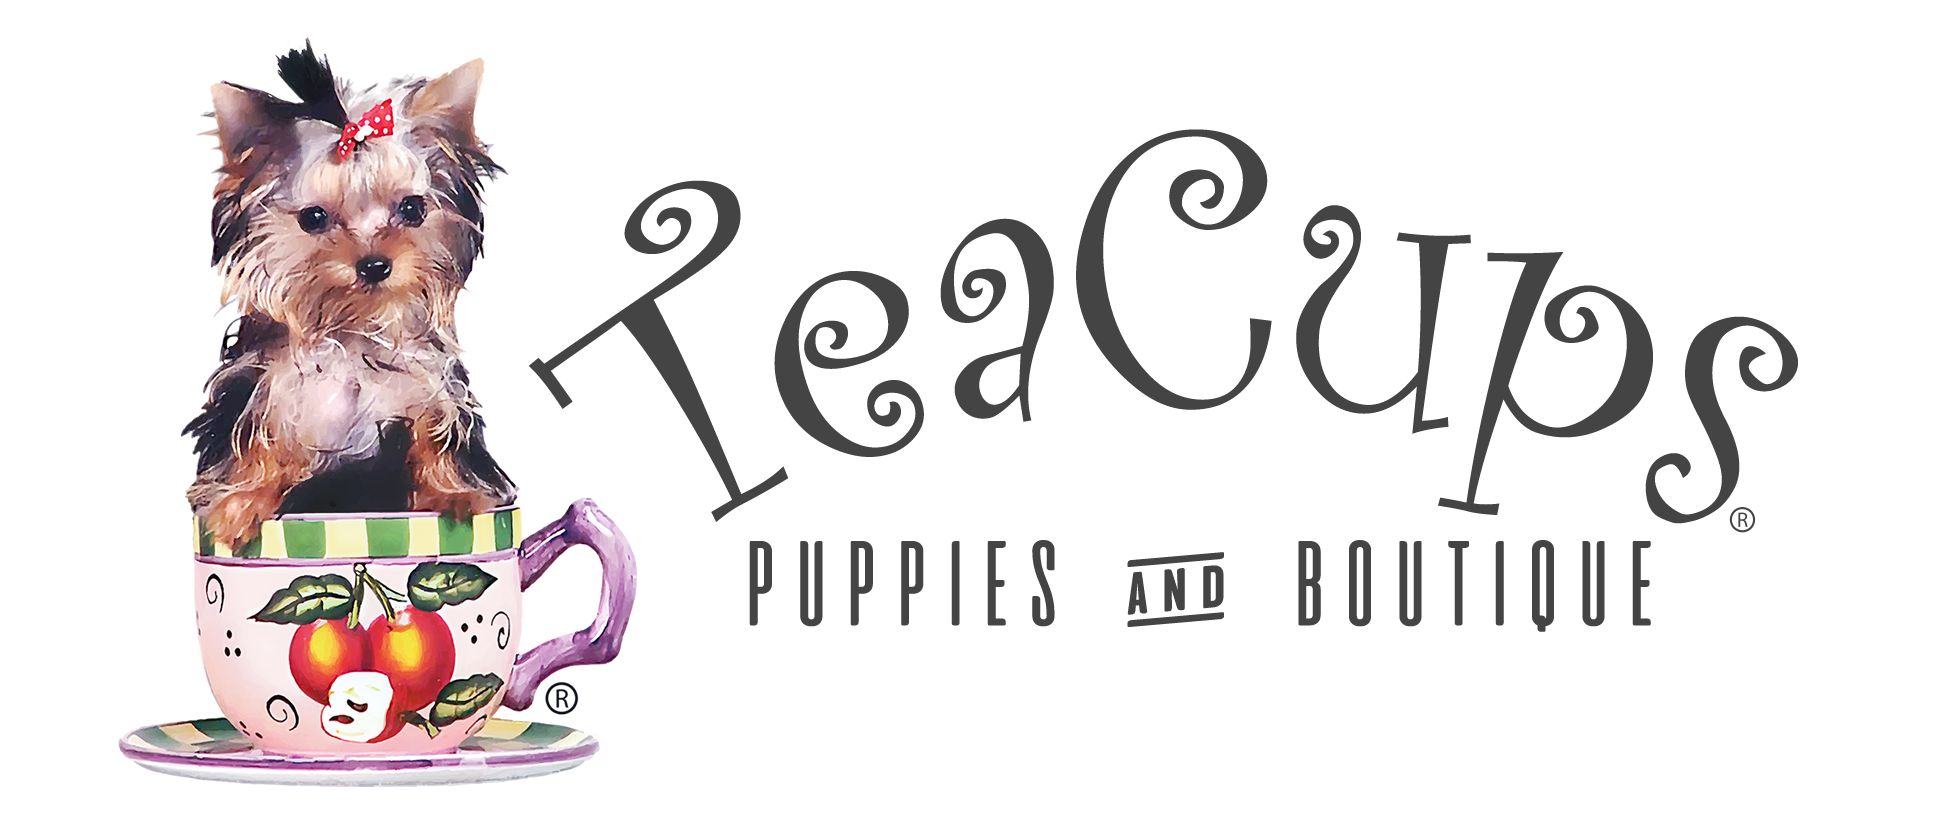 Yorkie clipart teacup yorkie. Teacups puppies boutique dogs